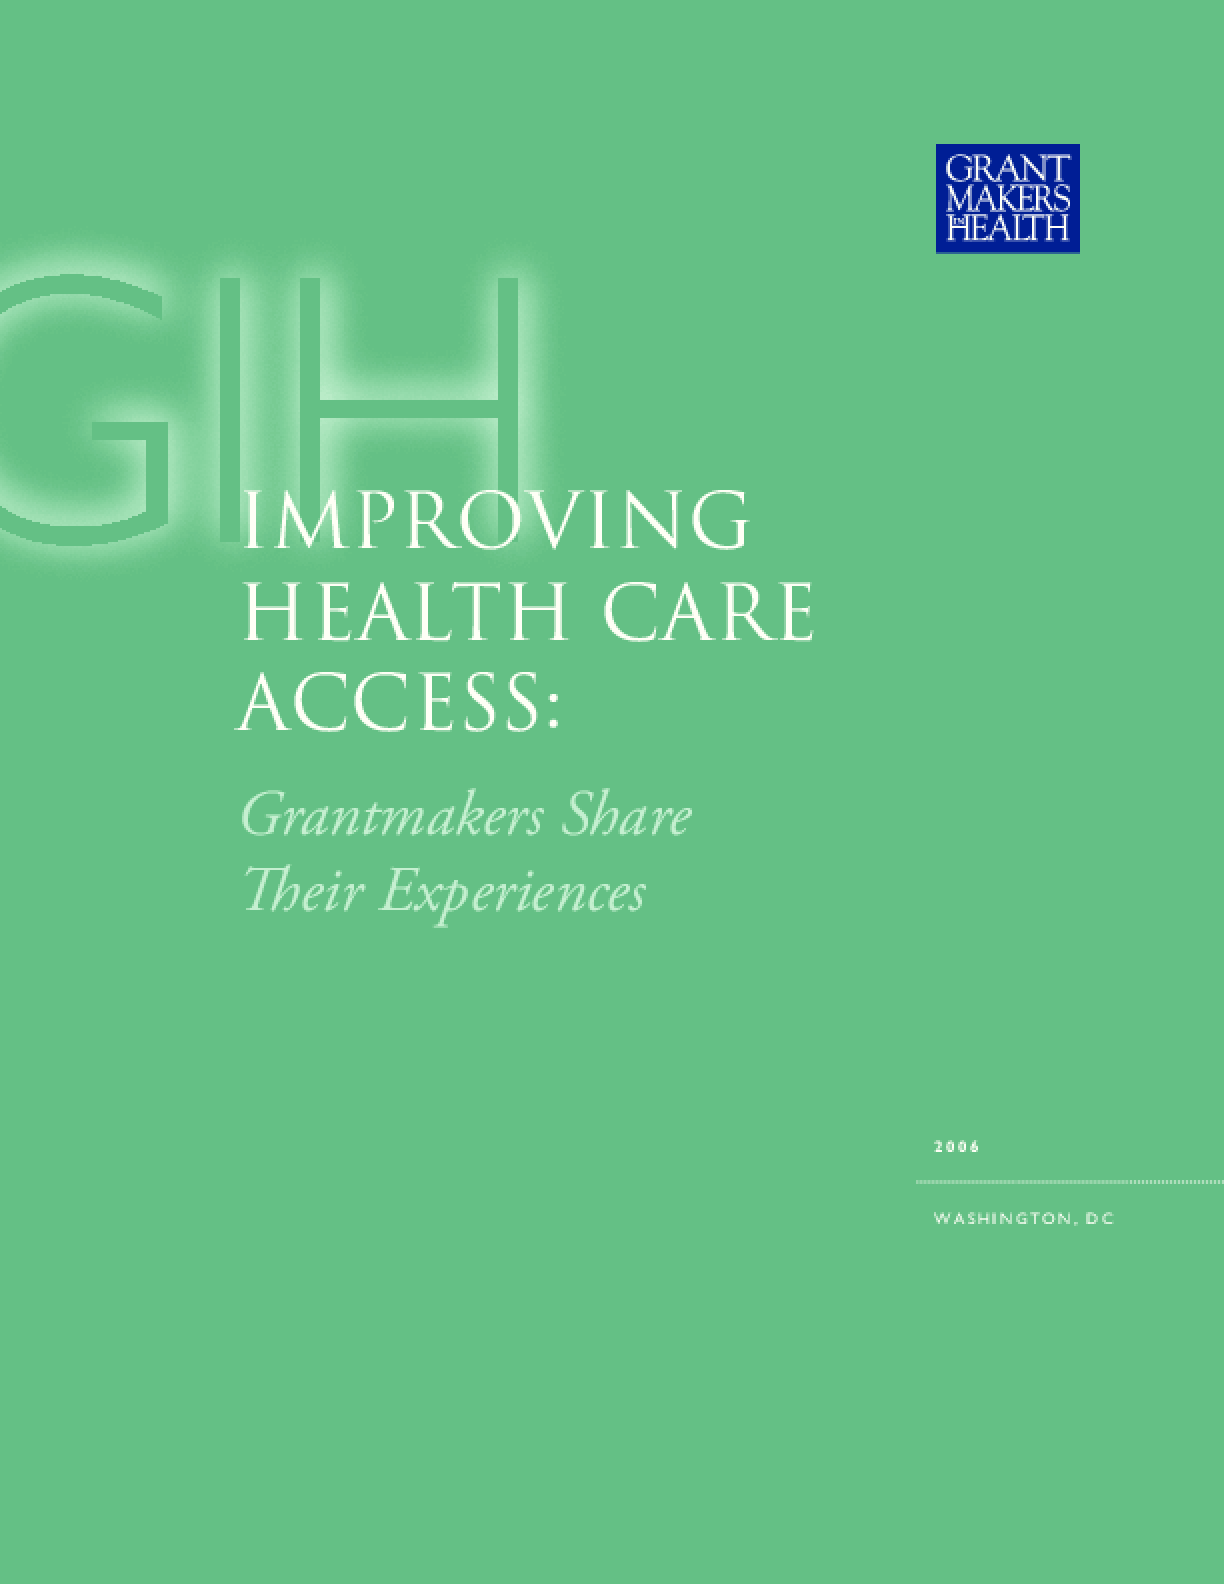 Improving Health Care Access: Grantmakers Share Their Experiences